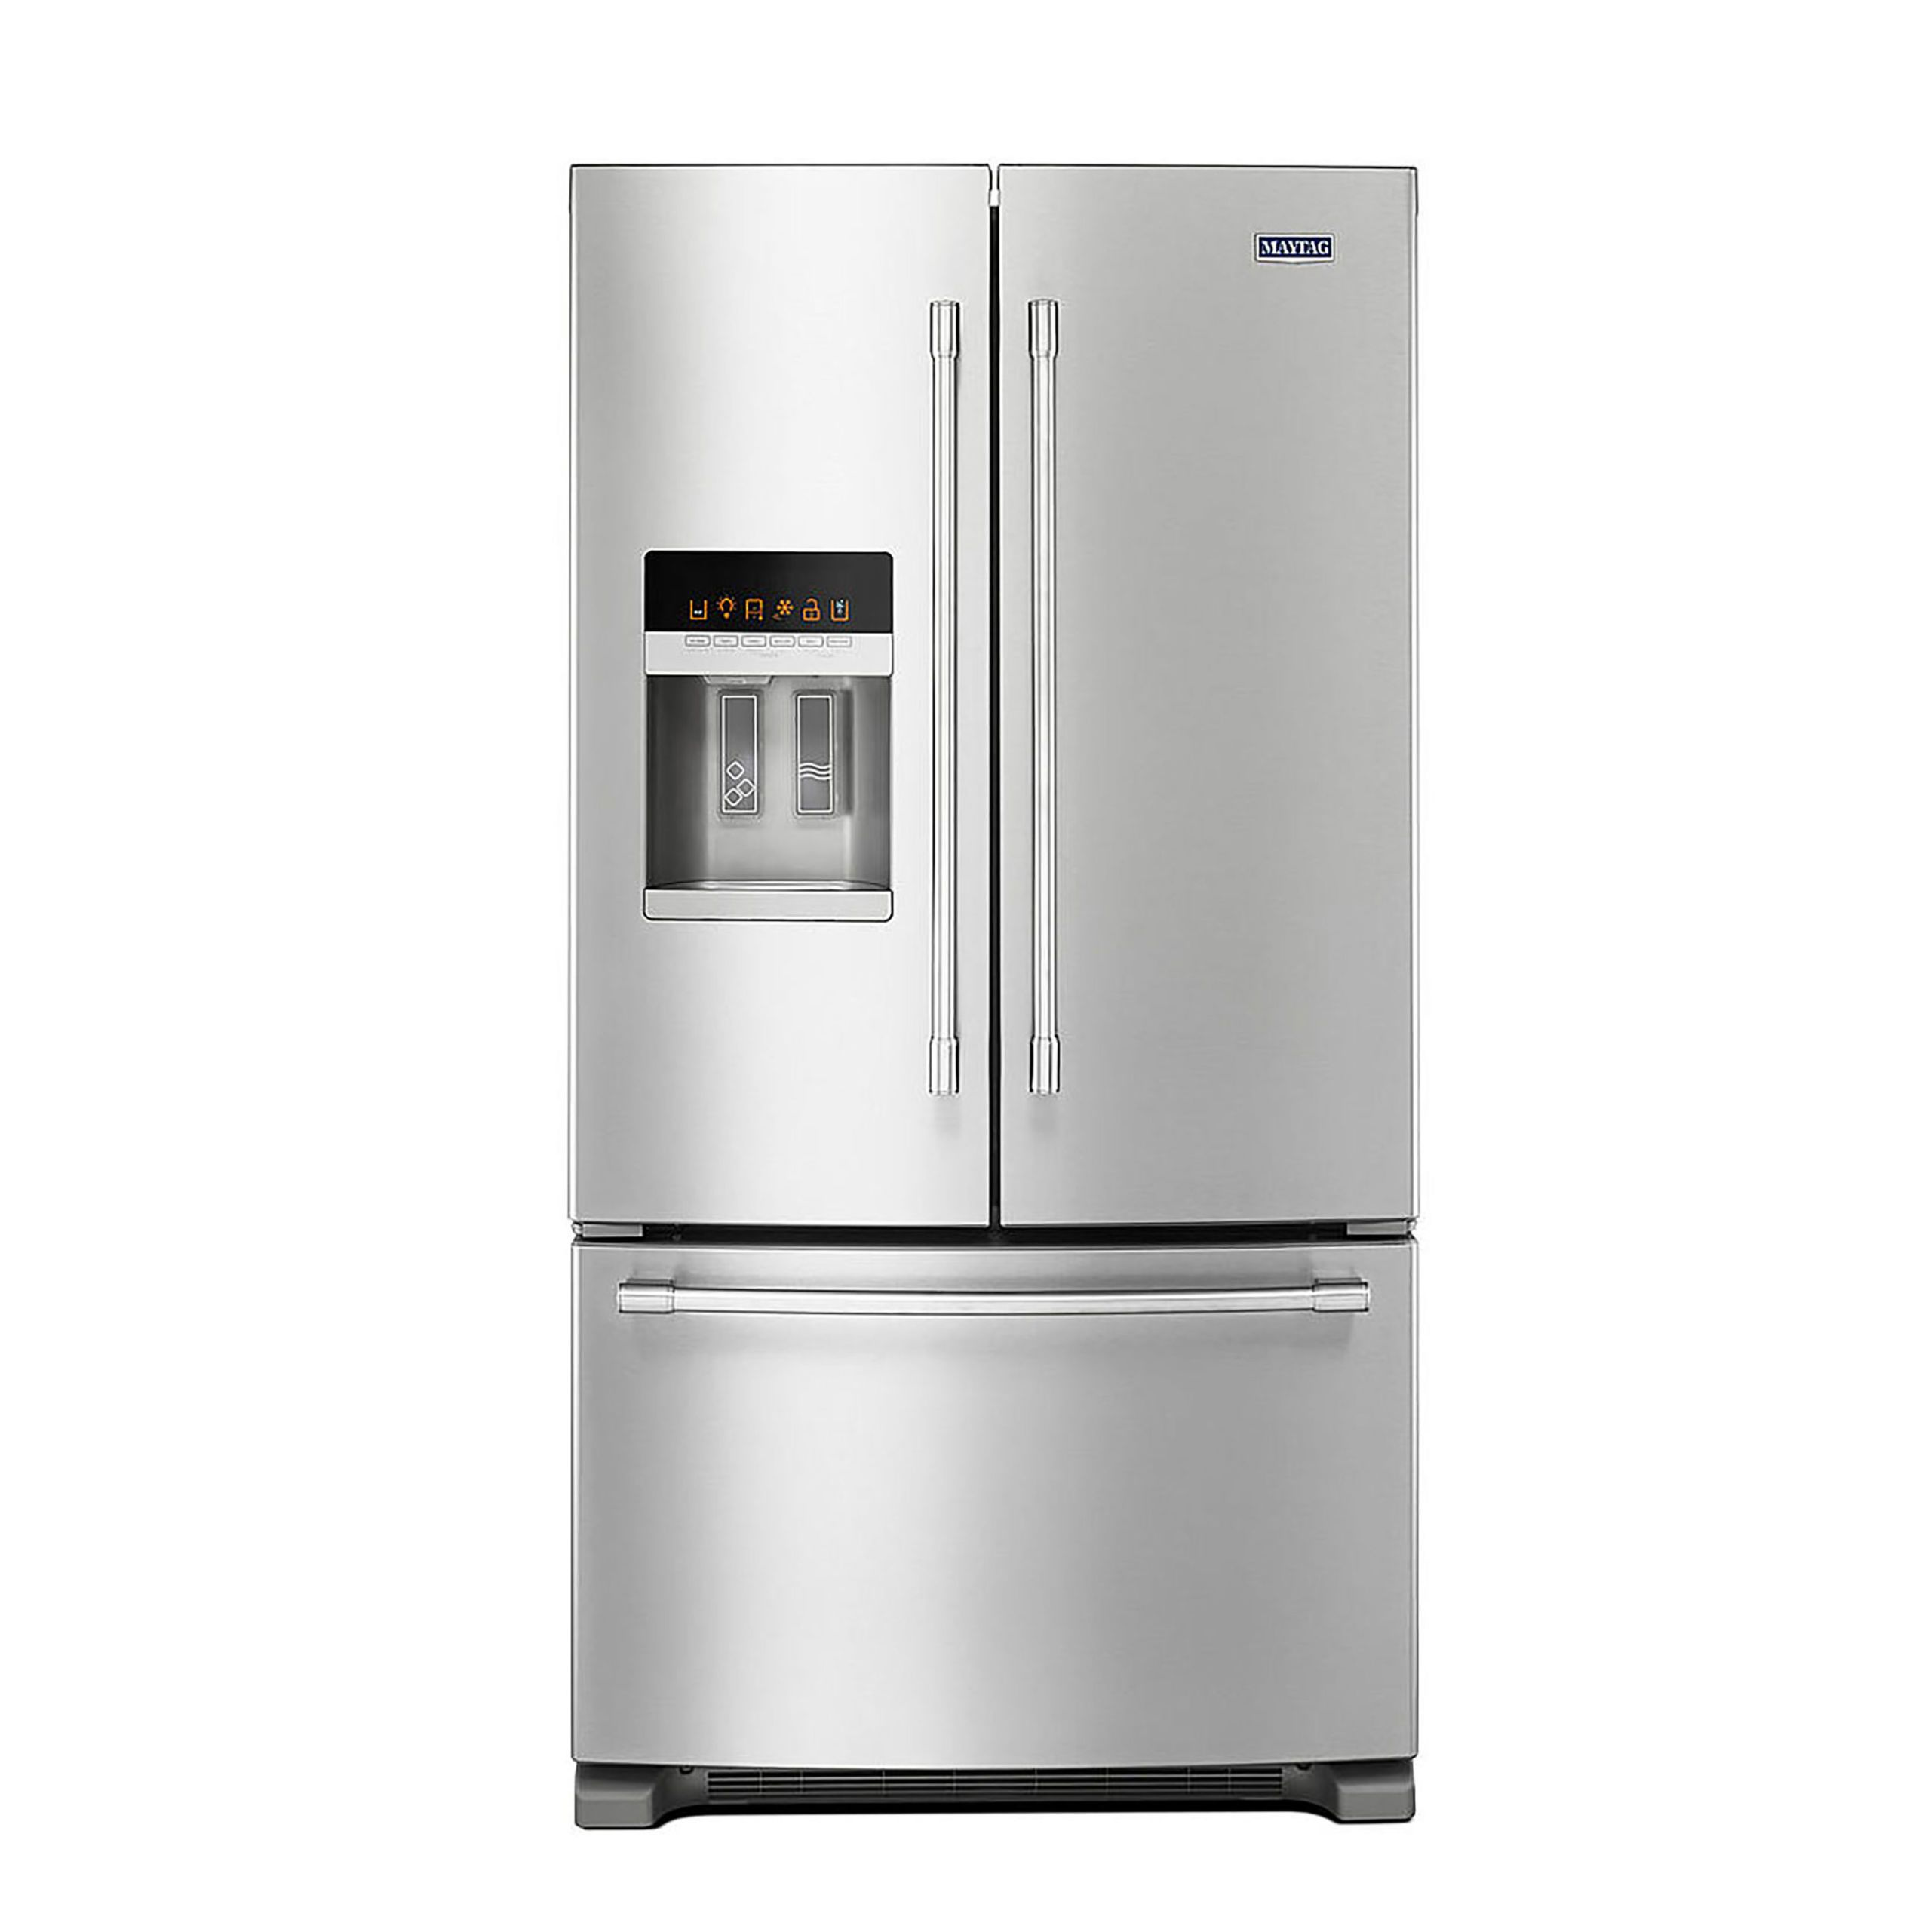 Maytag 36 Inch Wide French Door Refrigerator With Powercold Feature   25  Cu. Ft